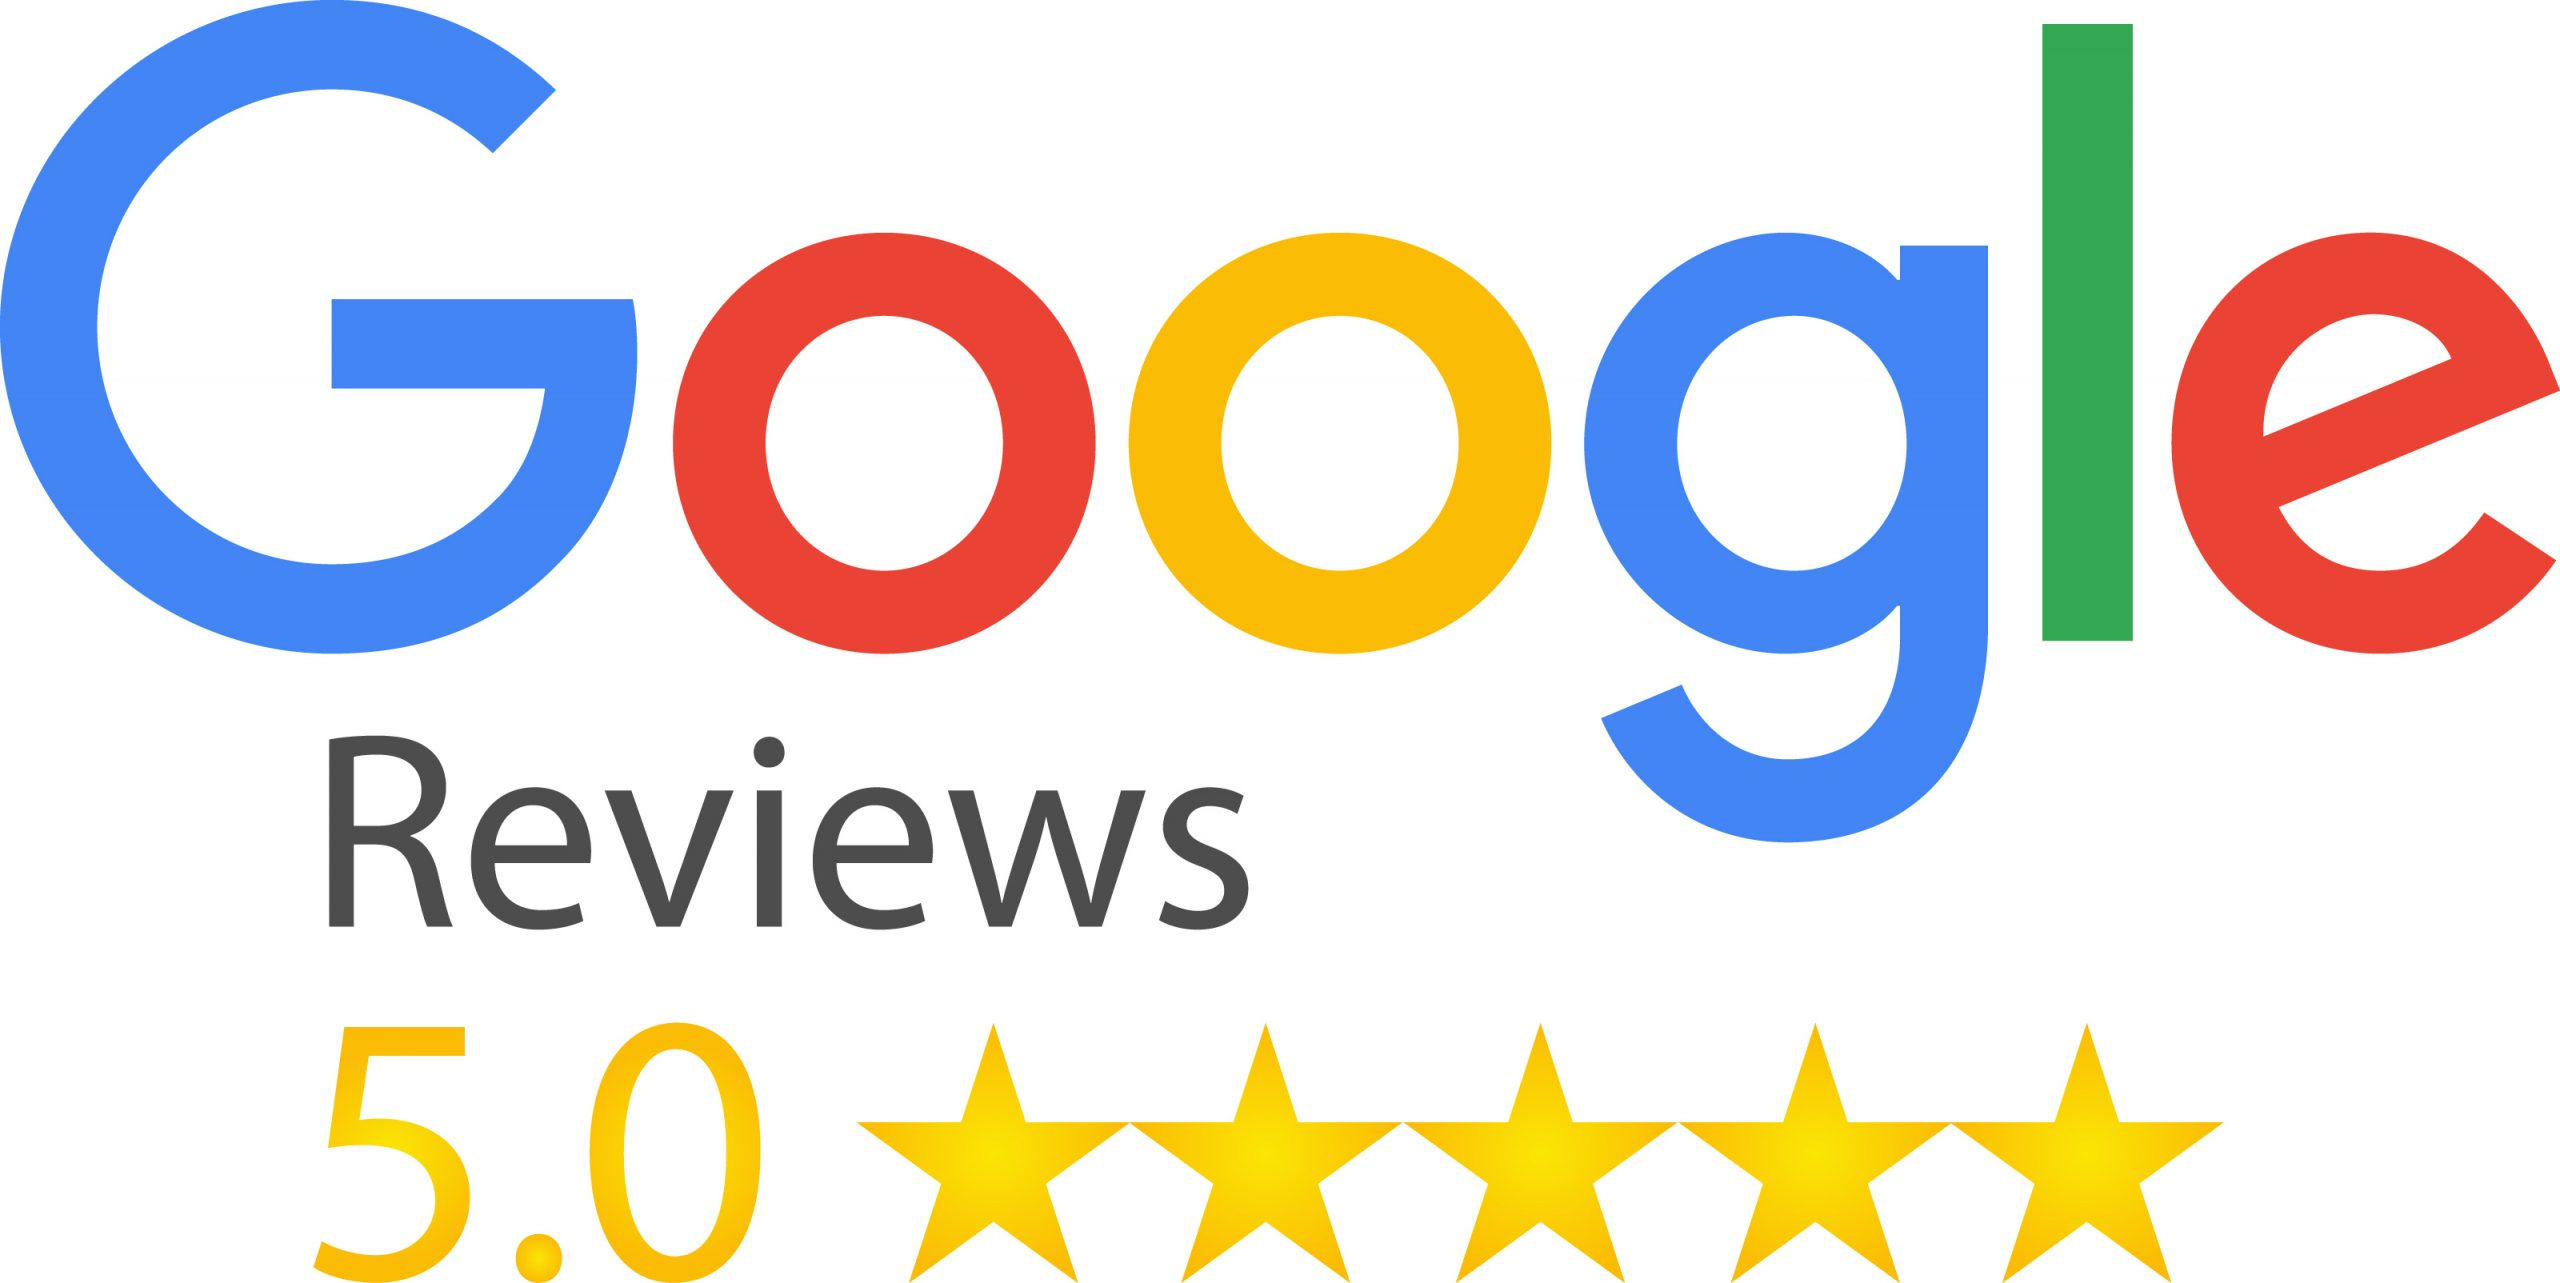 Murdock's Moving & Hauling Google Reviews